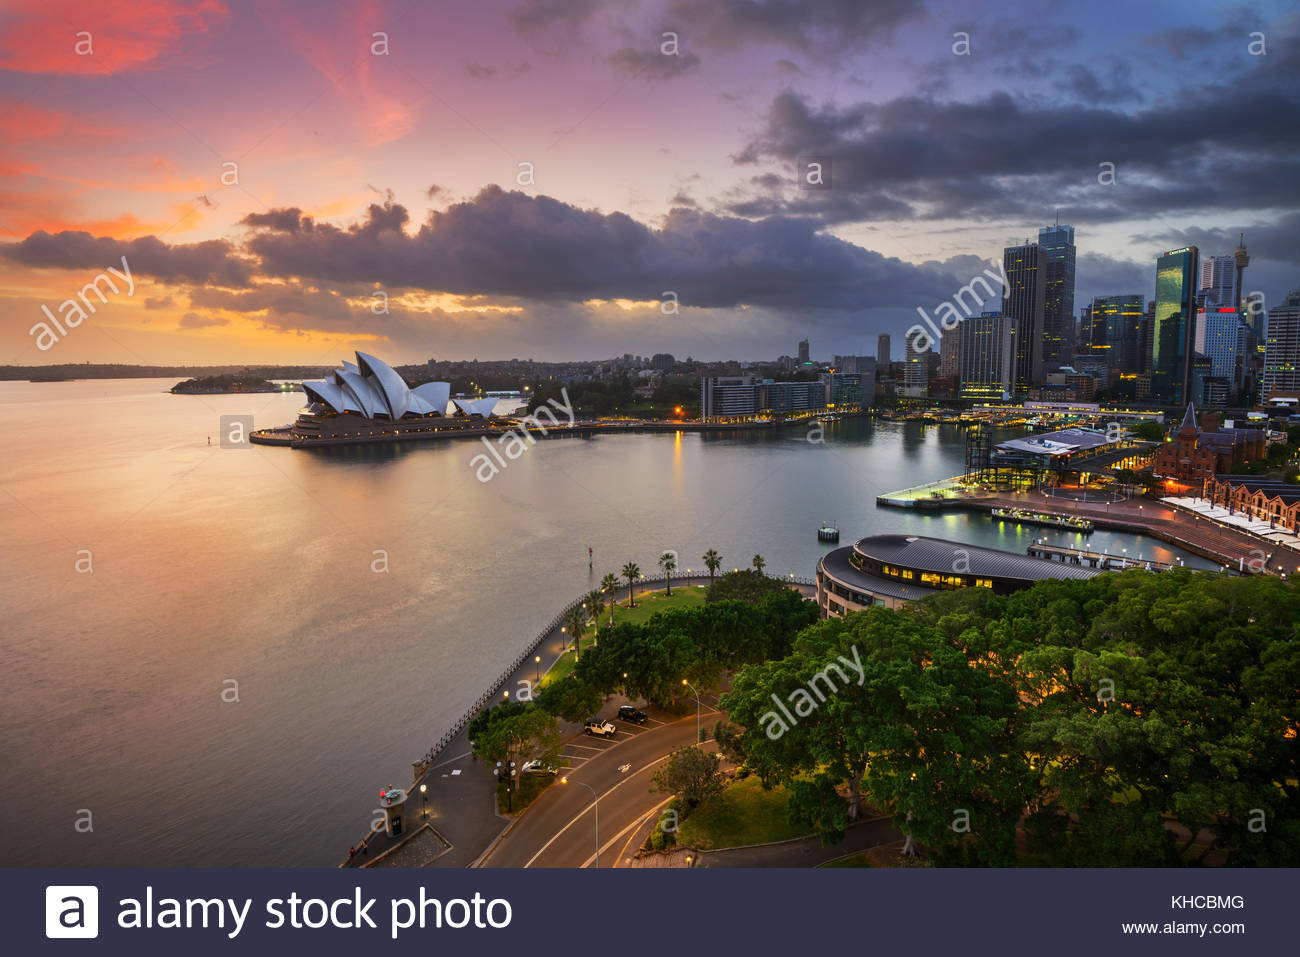 Dramatic Sunrise Over Sydney Opera House and The Rocks, Sydney, New South Wales (NSW), Australia - Stock Image